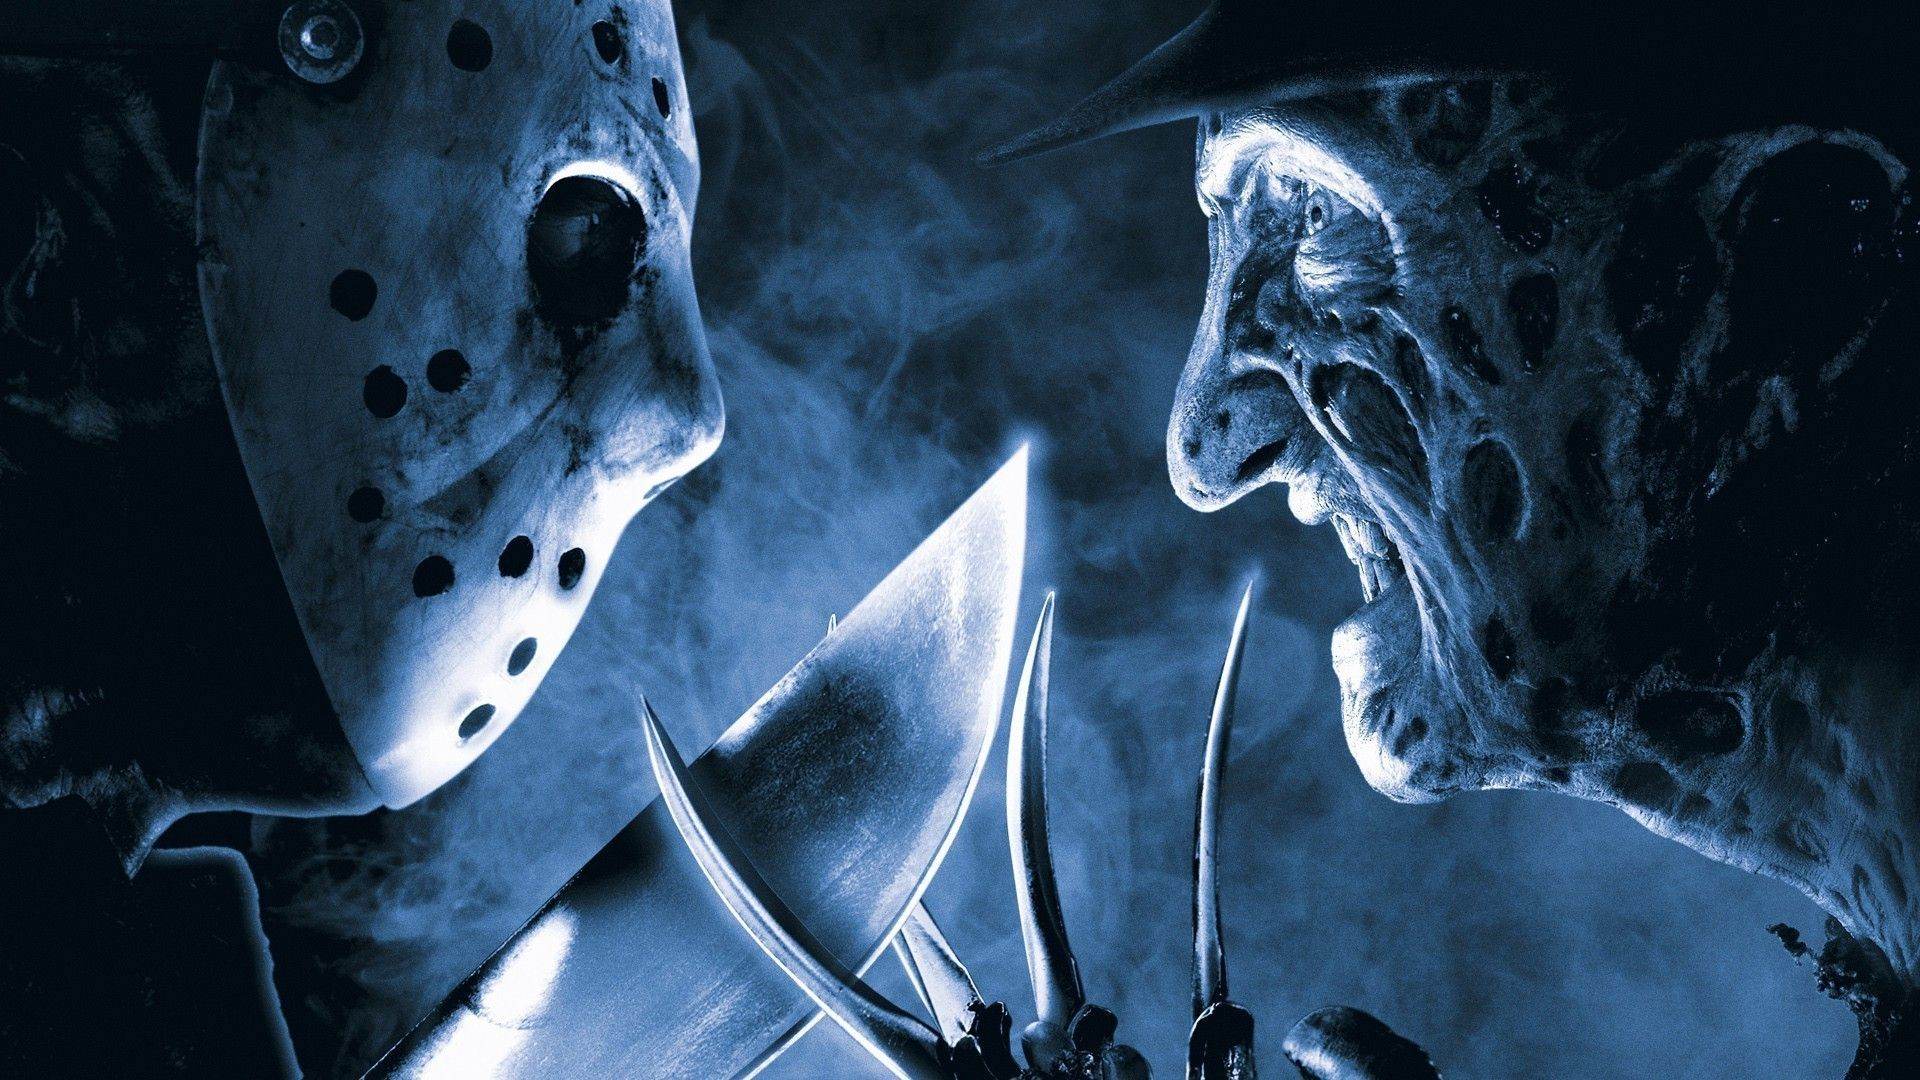 1920x1080 Freddy Krueger Wallpapers Images Photos Pictures Backgrounds Horror Movie Icons Jason Voorhees Freddy Krueger